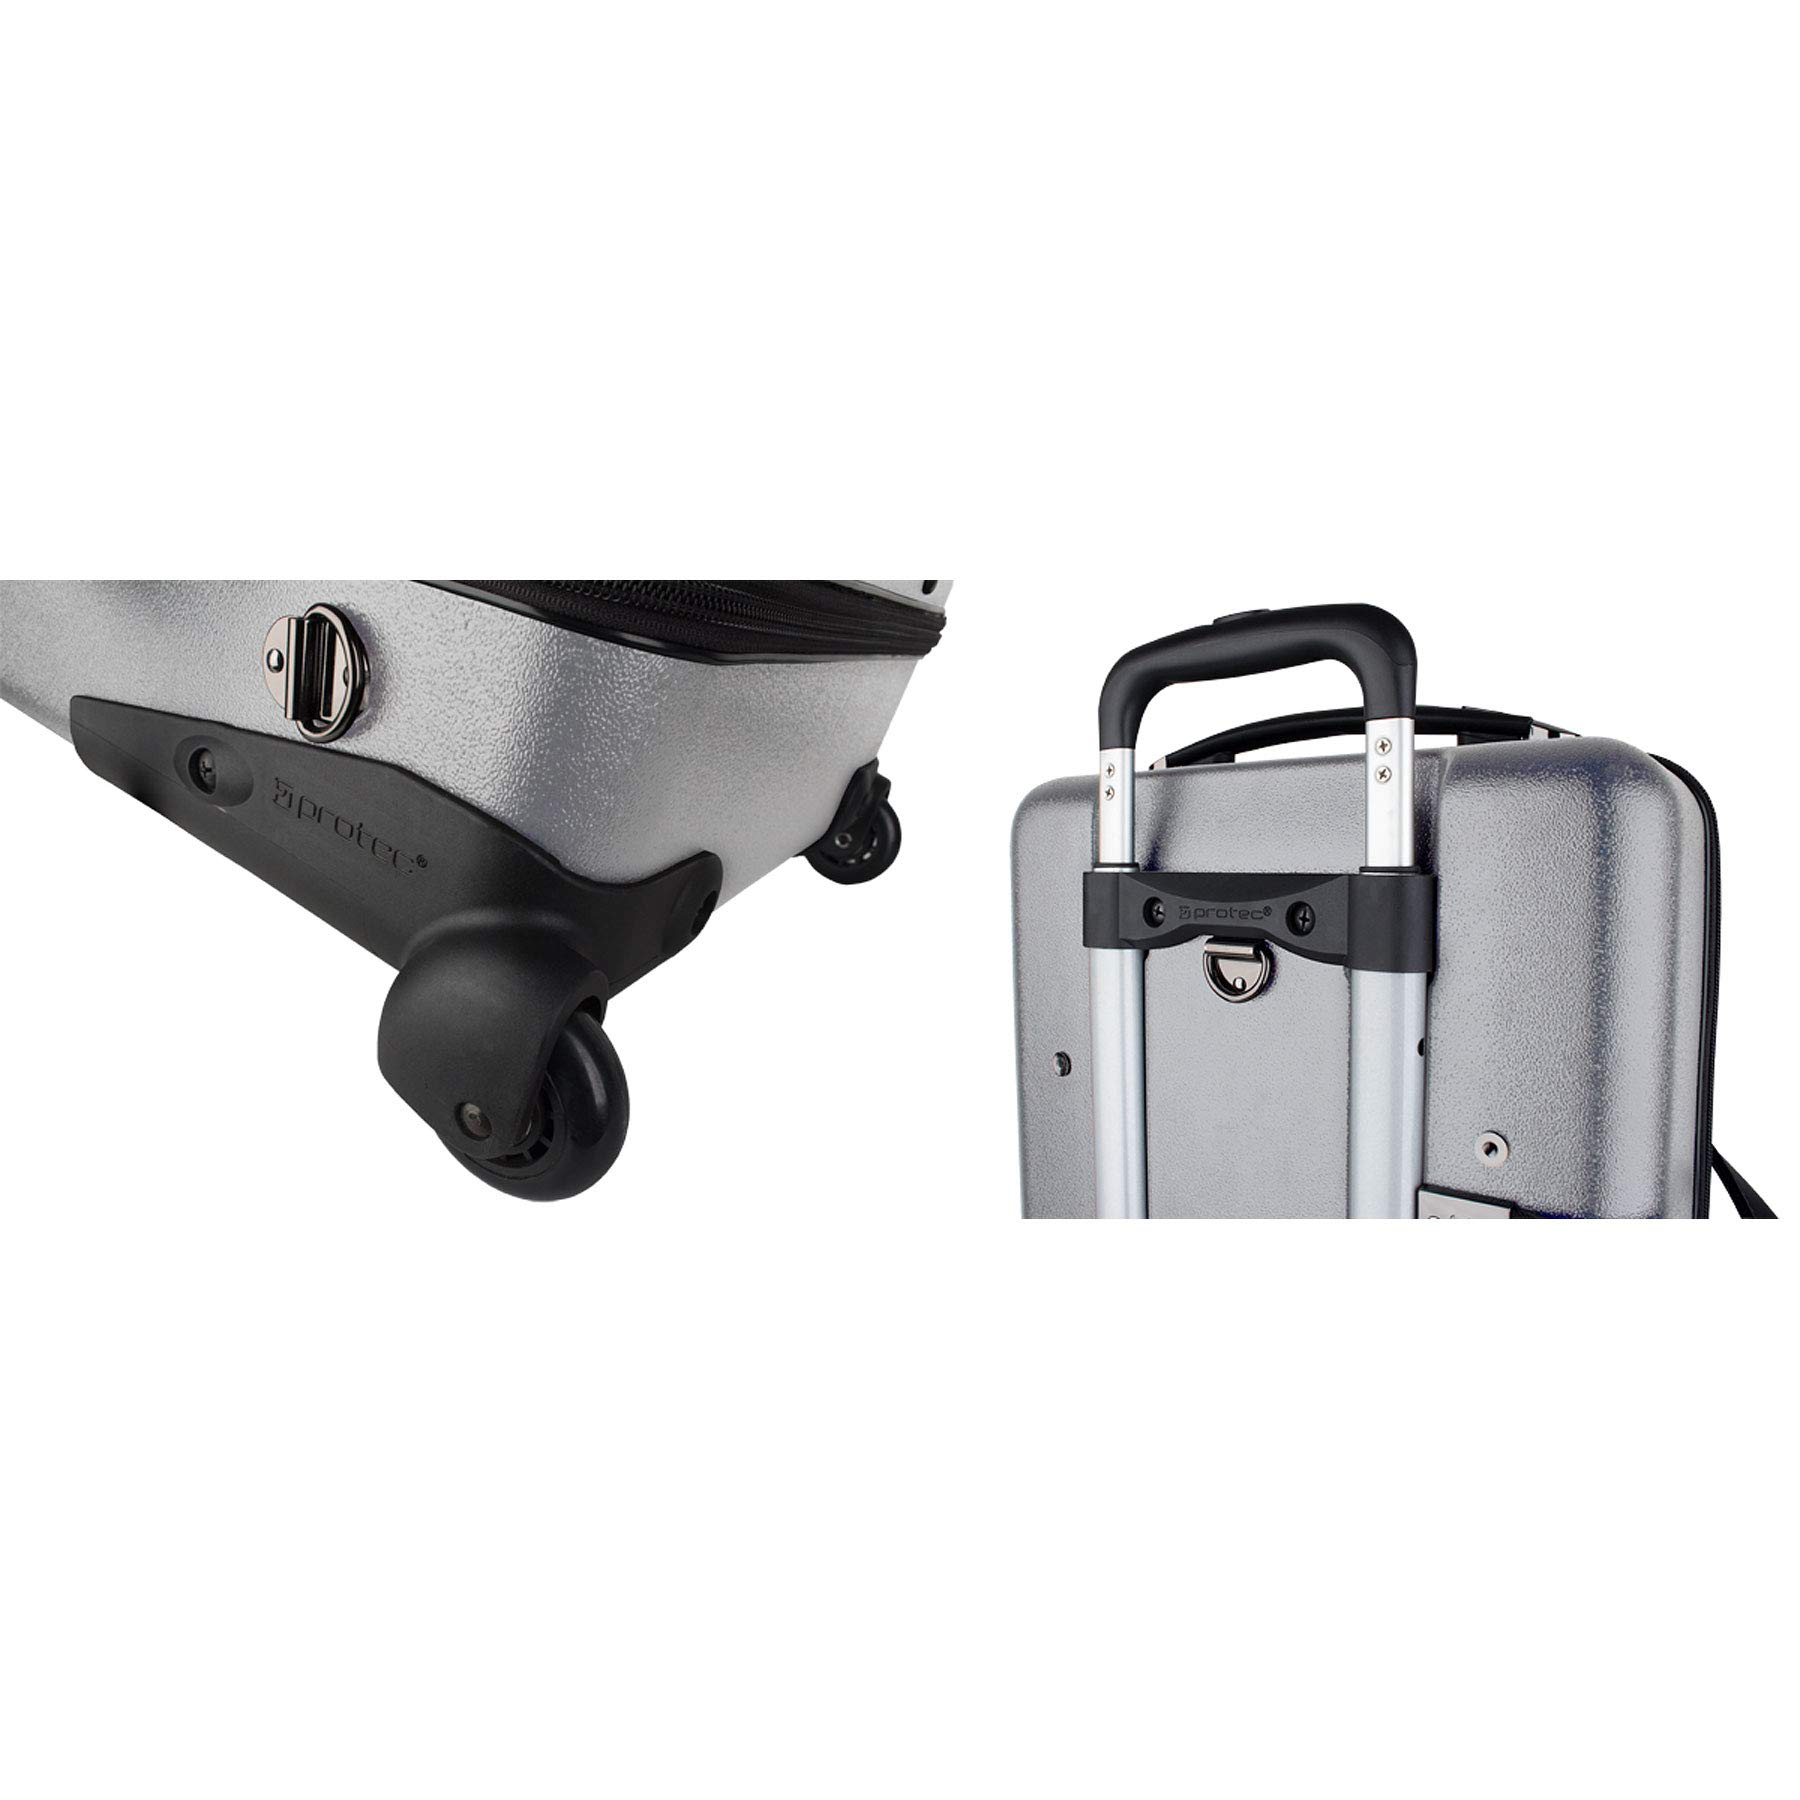 Protec Triple Trumpet Case with Wheels, Silver (BLT301TSX) by ProTec (Image #5)